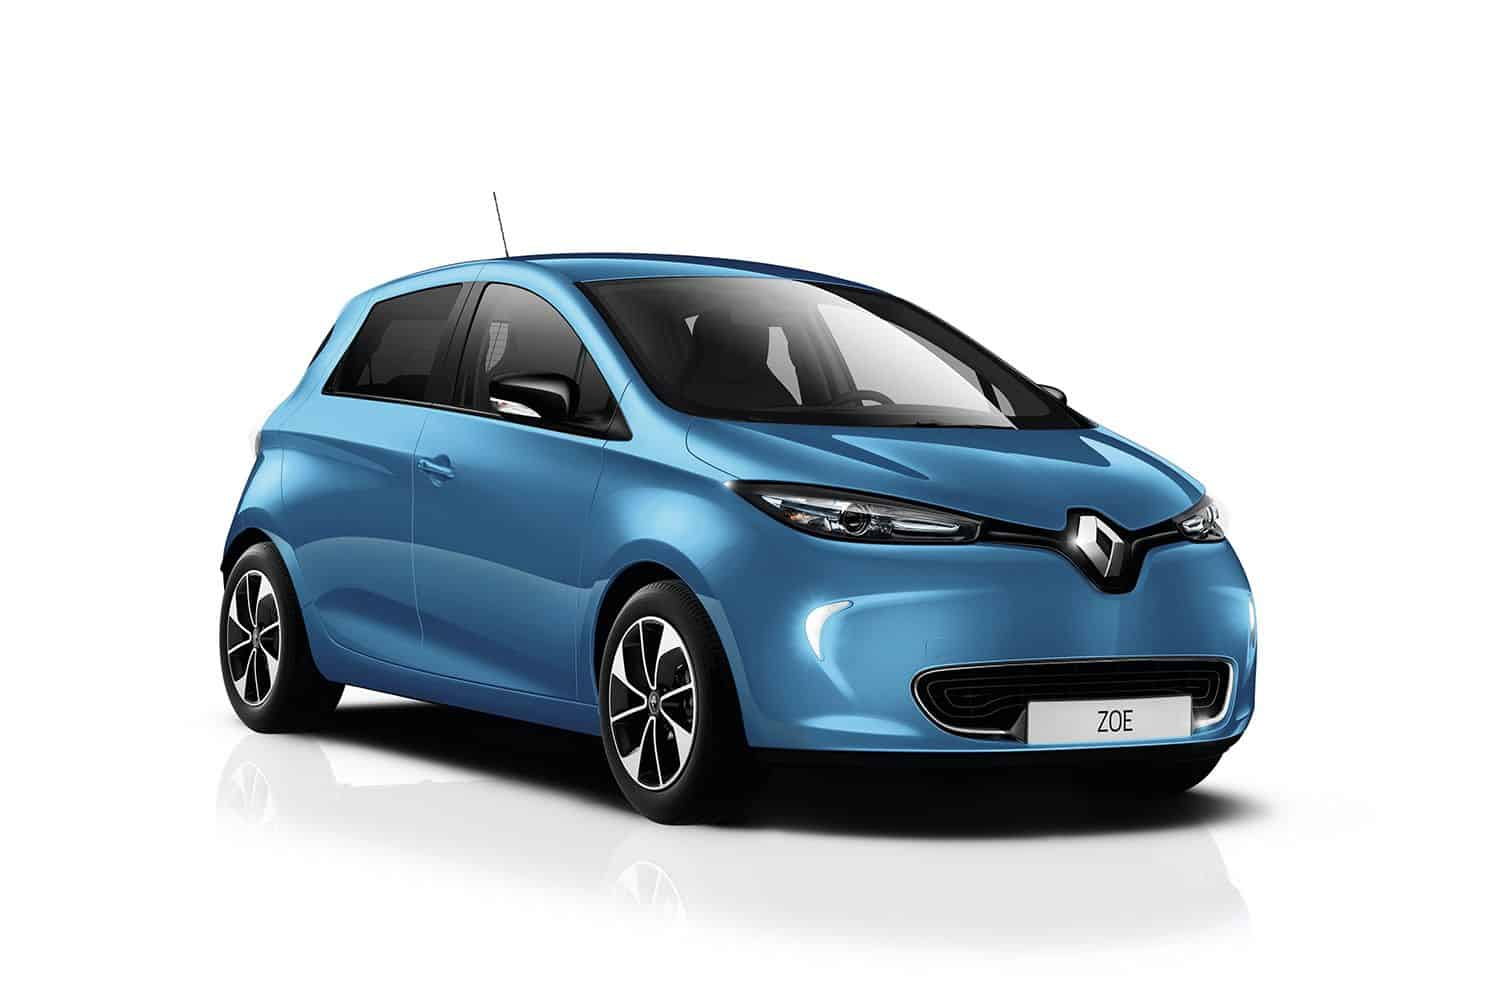 renault zoe jetzt mit 400 kilometern elektrischer reichweite. Black Bedroom Furniture Sets. Home Design Ideas